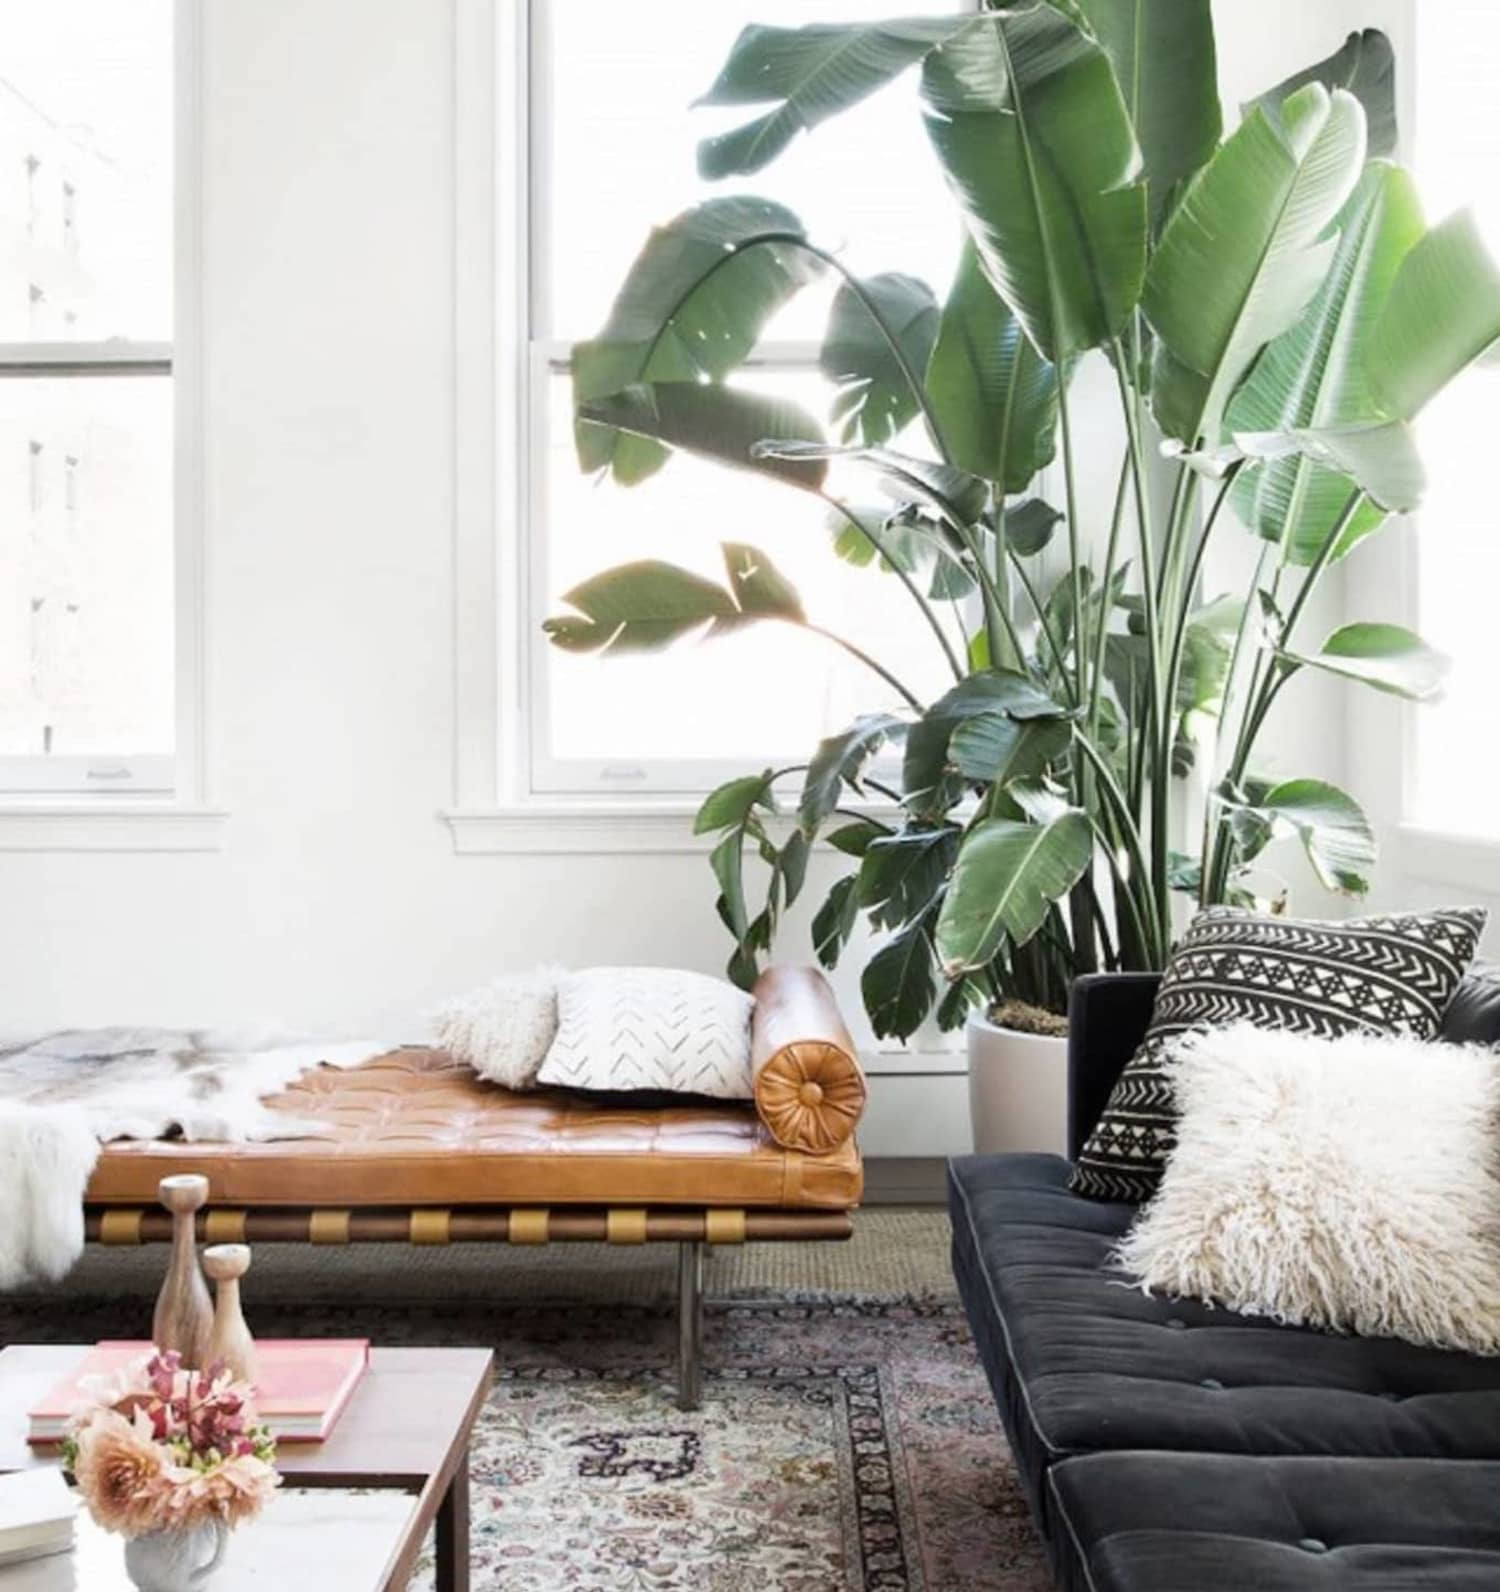 tropical decorations on bed tropical home decor ideas.htm 12 best indoor trees large floor plants for a bold statement  12 best indoor trees large floor